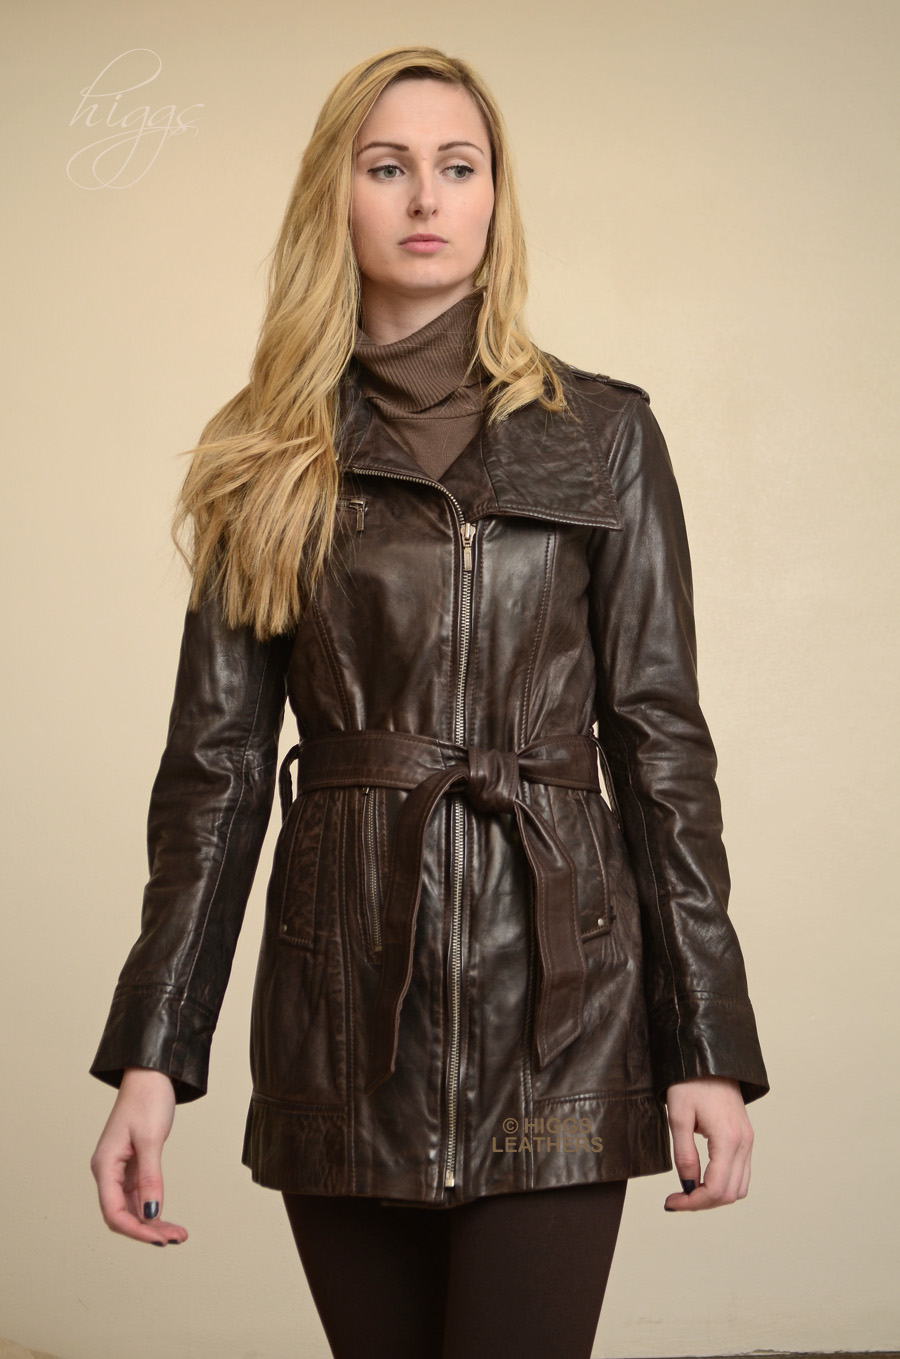 Higgs Leathers | Buy Kazzi (ladies Brown Designer Leather jackets